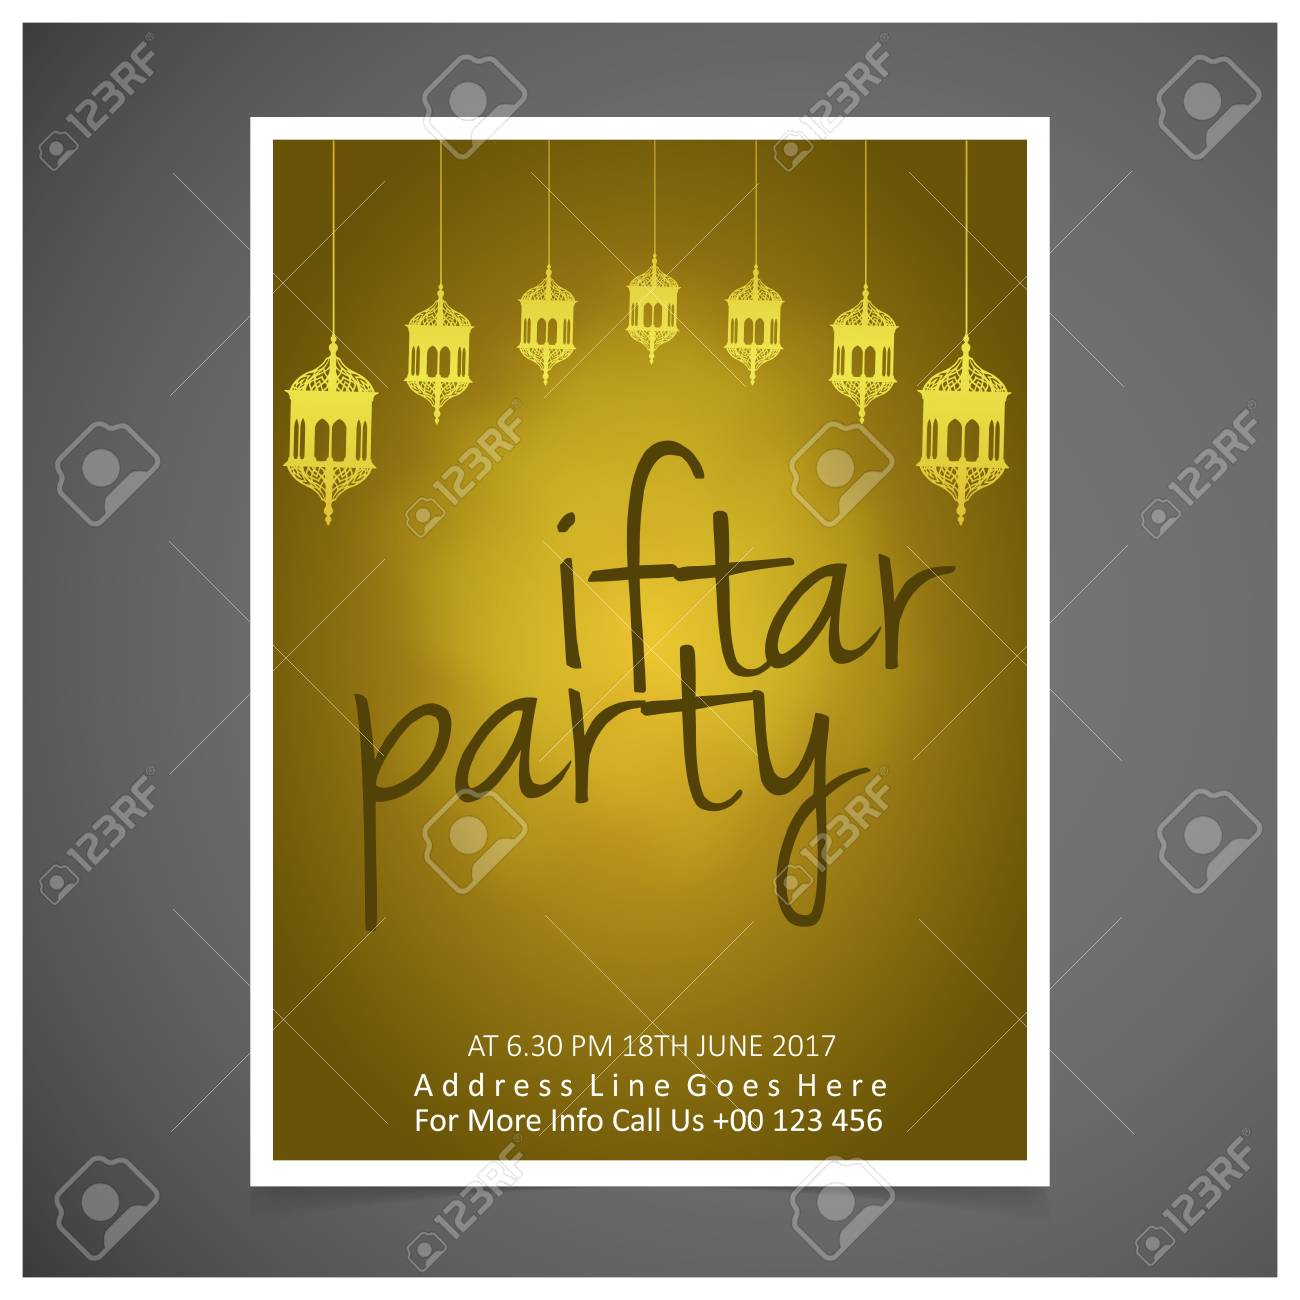 Elegant Iftar Party Invitation Card Design Decorated On Yellow